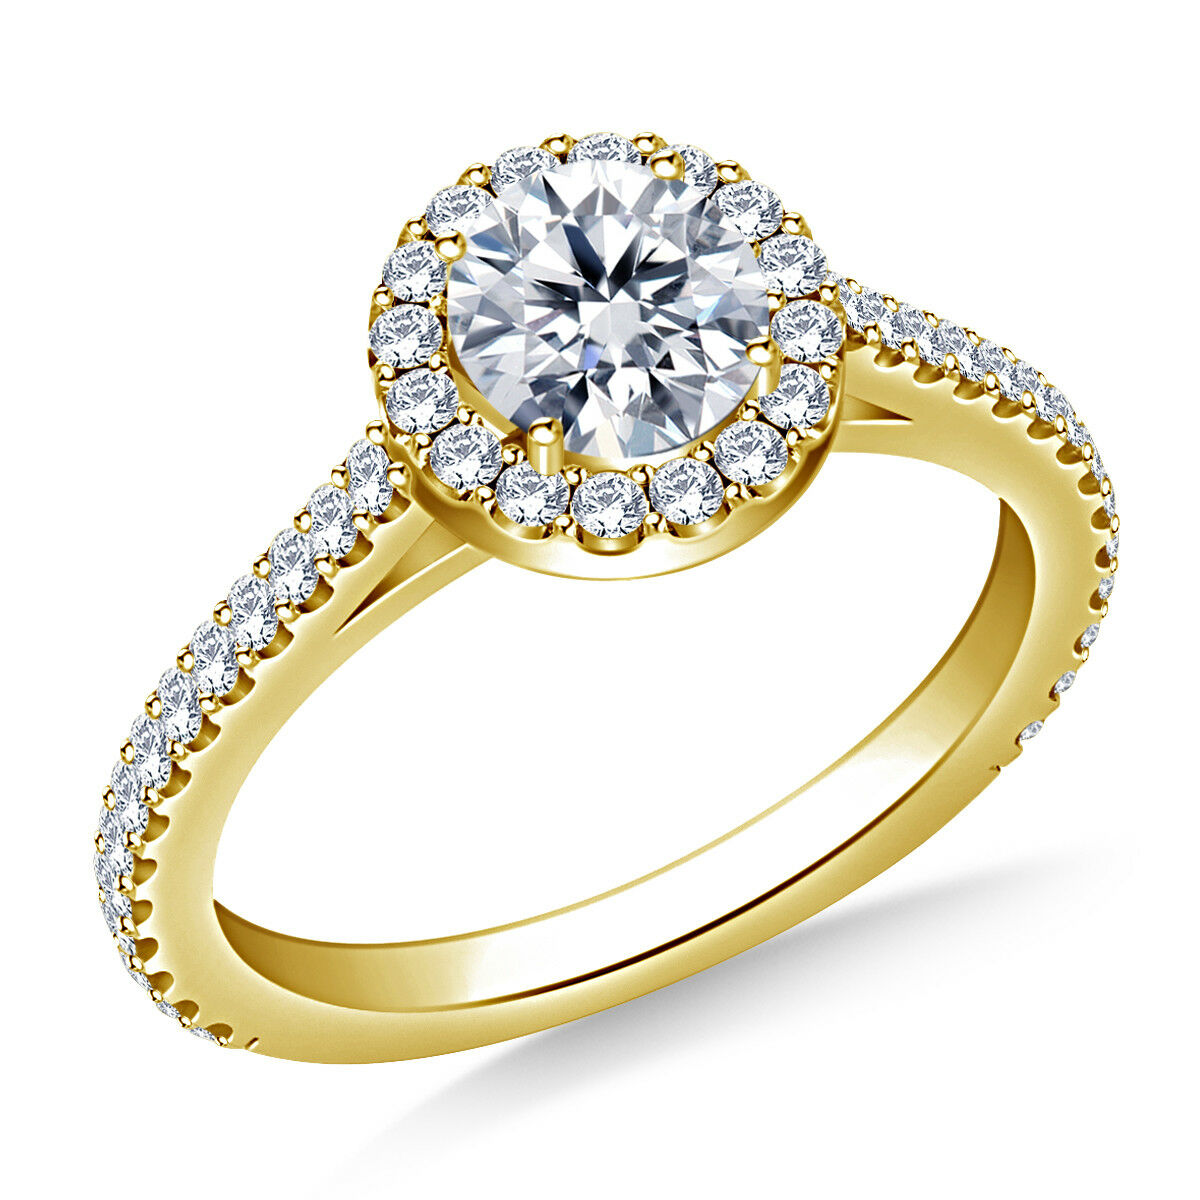 0.98 Ct Round Cut Solitaire Diamond Engagement Ring 14K Solid Yellow gold Rings